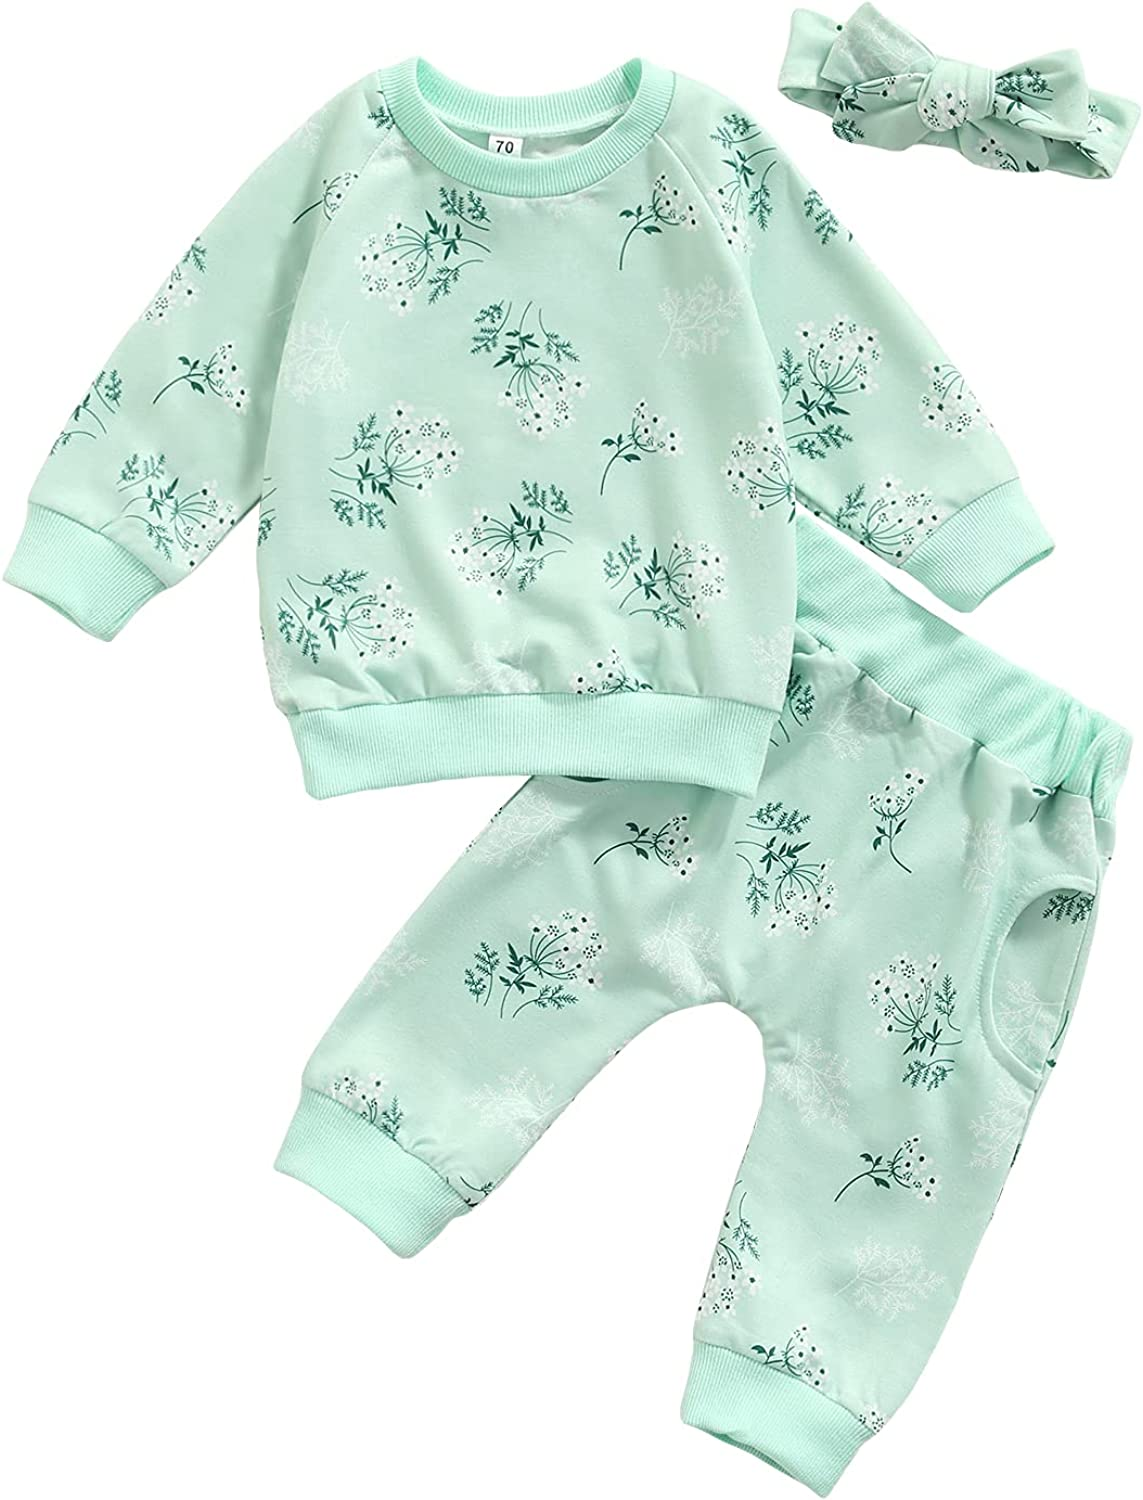 Newborn Baby Boy Girl Outfits Rainbow Floral Print Long Sleeve Sweatshirt Tops+Long Pants Infant Baby Clothes Set